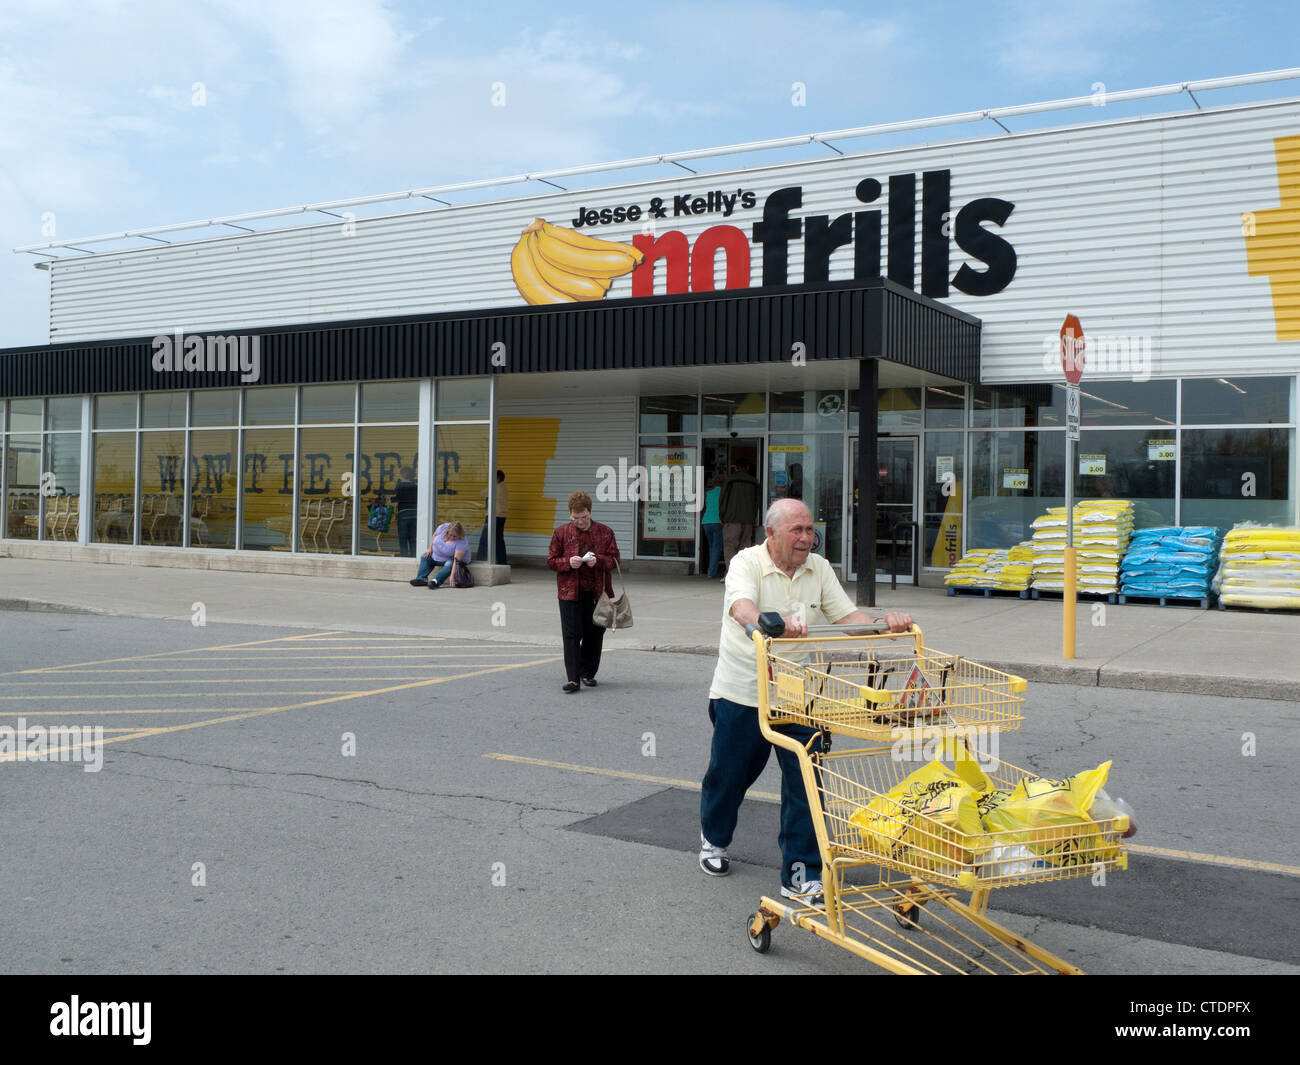 An elderly man pushing a shopping trolley outside Jesse & Kelly's No Frills supermarket store Ontario, Canada, North Stock Photo